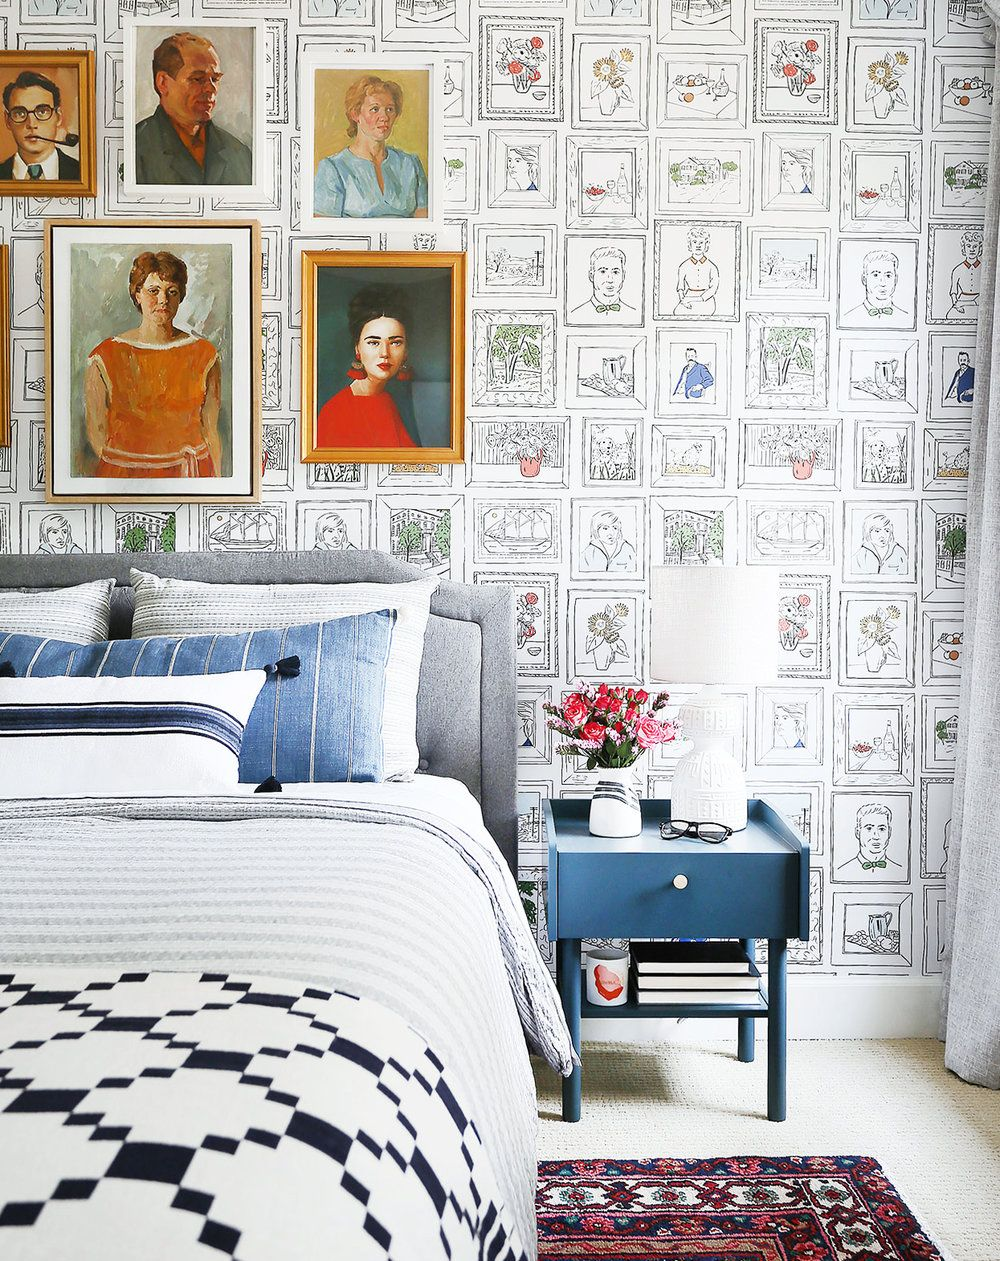 These 8 Unique Guest Bedroom Decorating Ideas All but Guarantee a